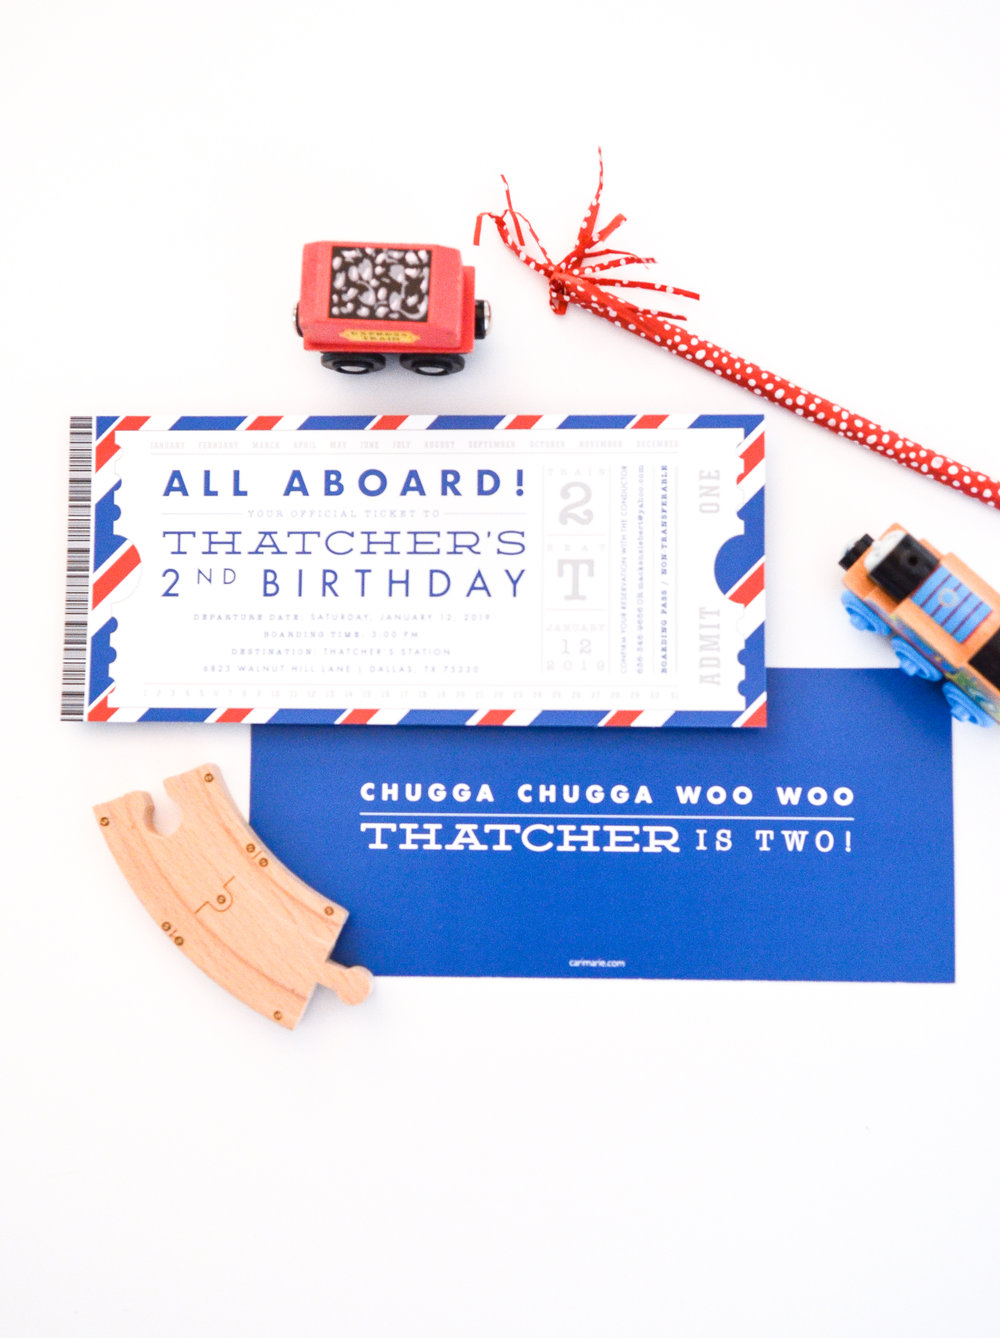 All Aboard For A Choo Train Birthday Party 2 Year Old This Fun Invite Was Designed To Look Like Ticket And Featured Sayings About